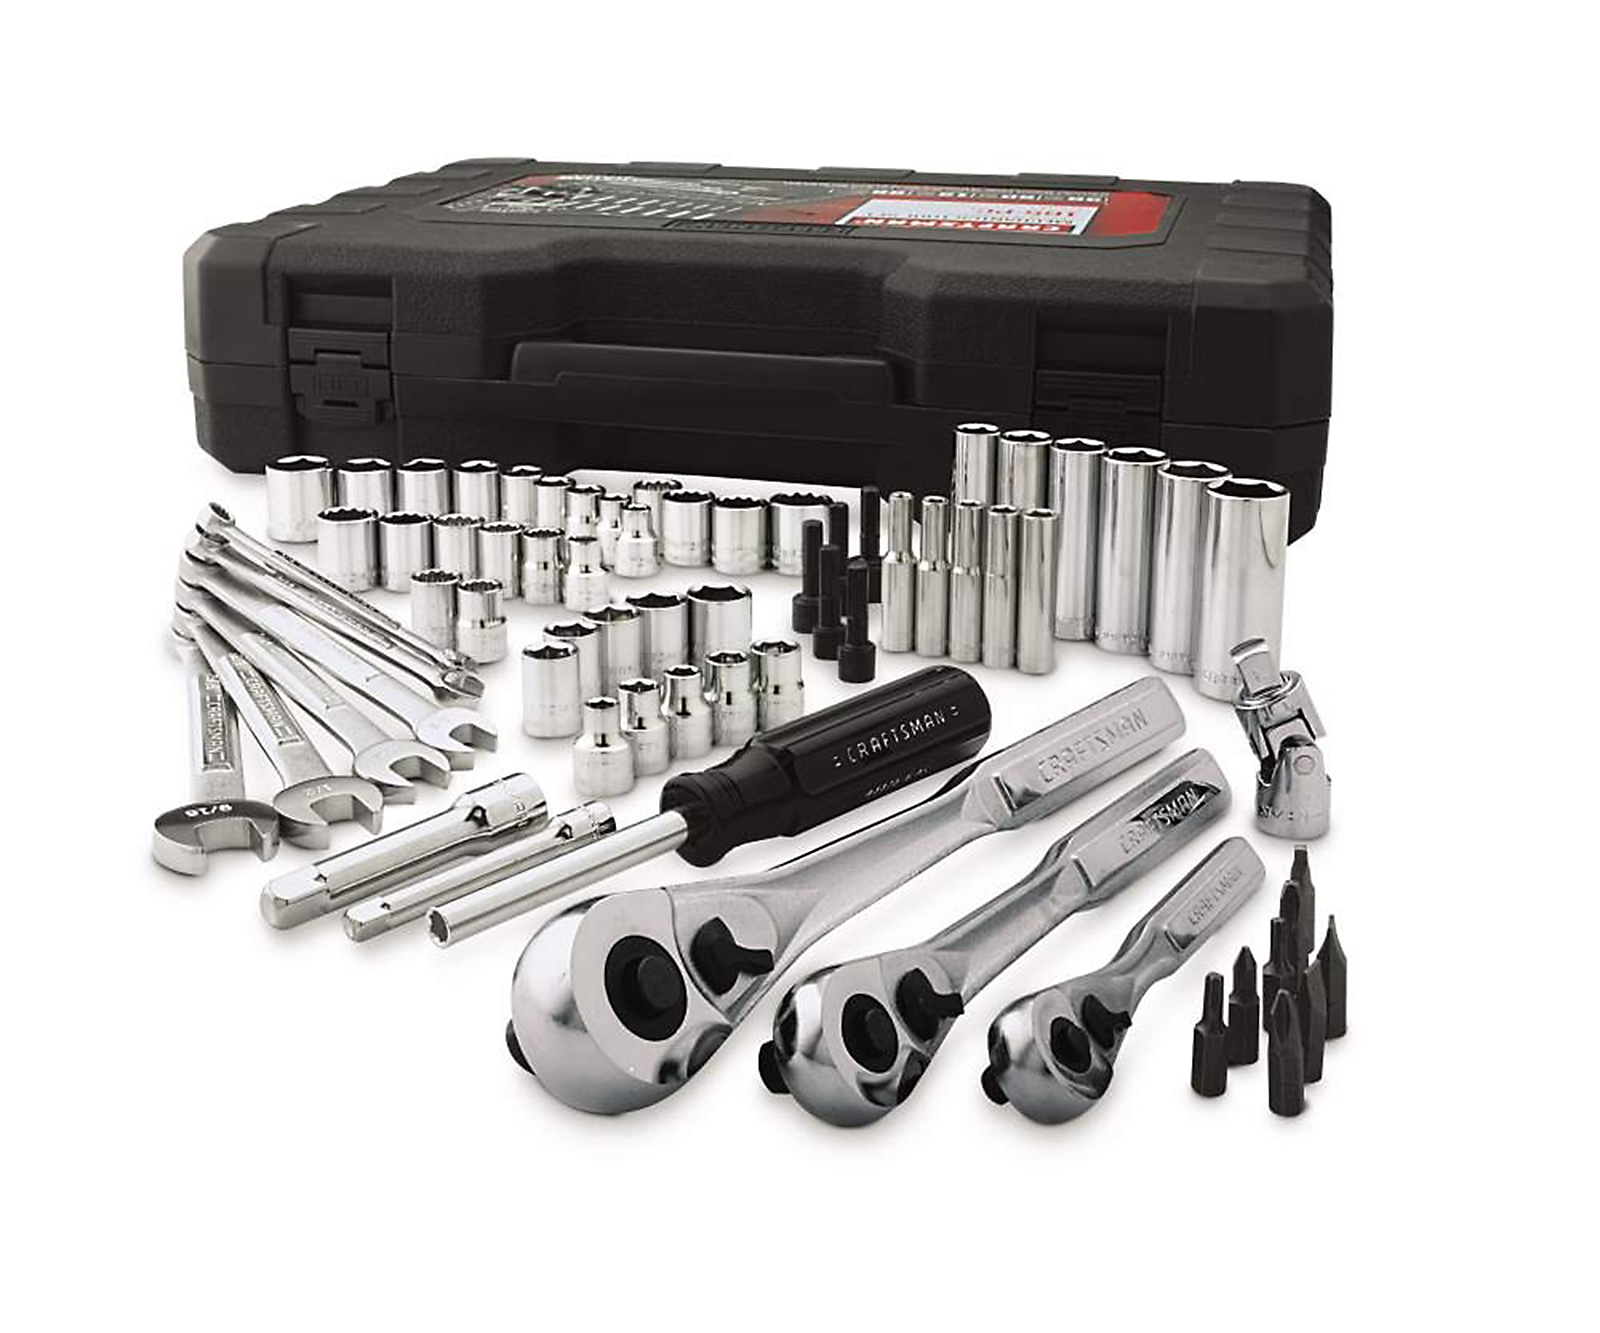 Tool Boxes & Tool Chests Keep your tools organized, save space and complete your project quickly with a tool chest from Sears Outlet. A tool box is an ideal storage solution for anyone in the automotive industry, contractors, handymen and home DIYers.